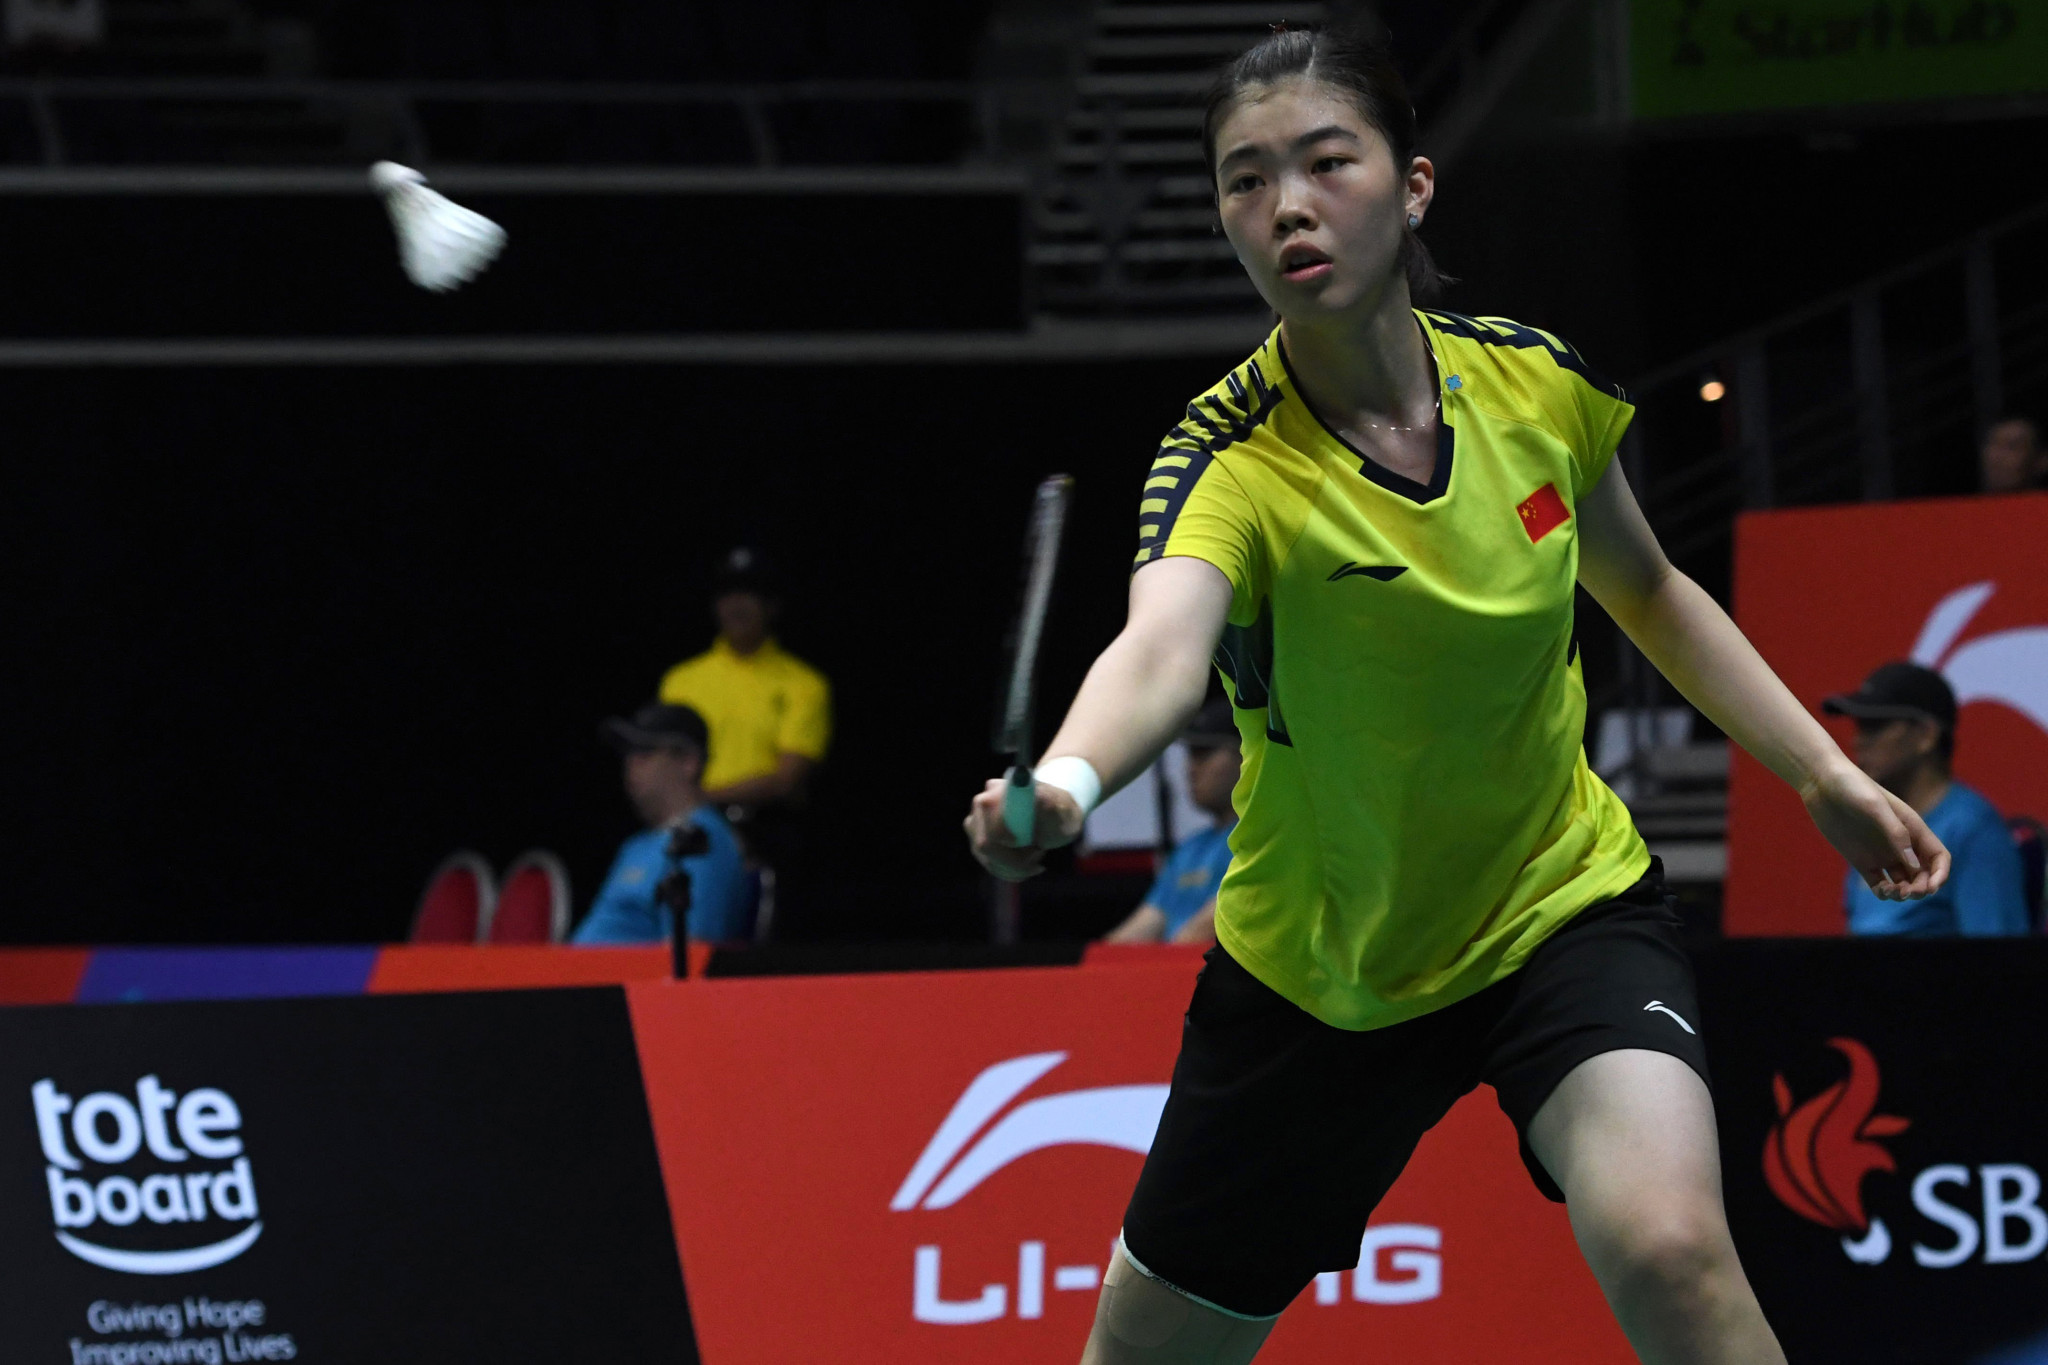 Gao beats highest seed to reach women's singles final at BWF Singapore Open